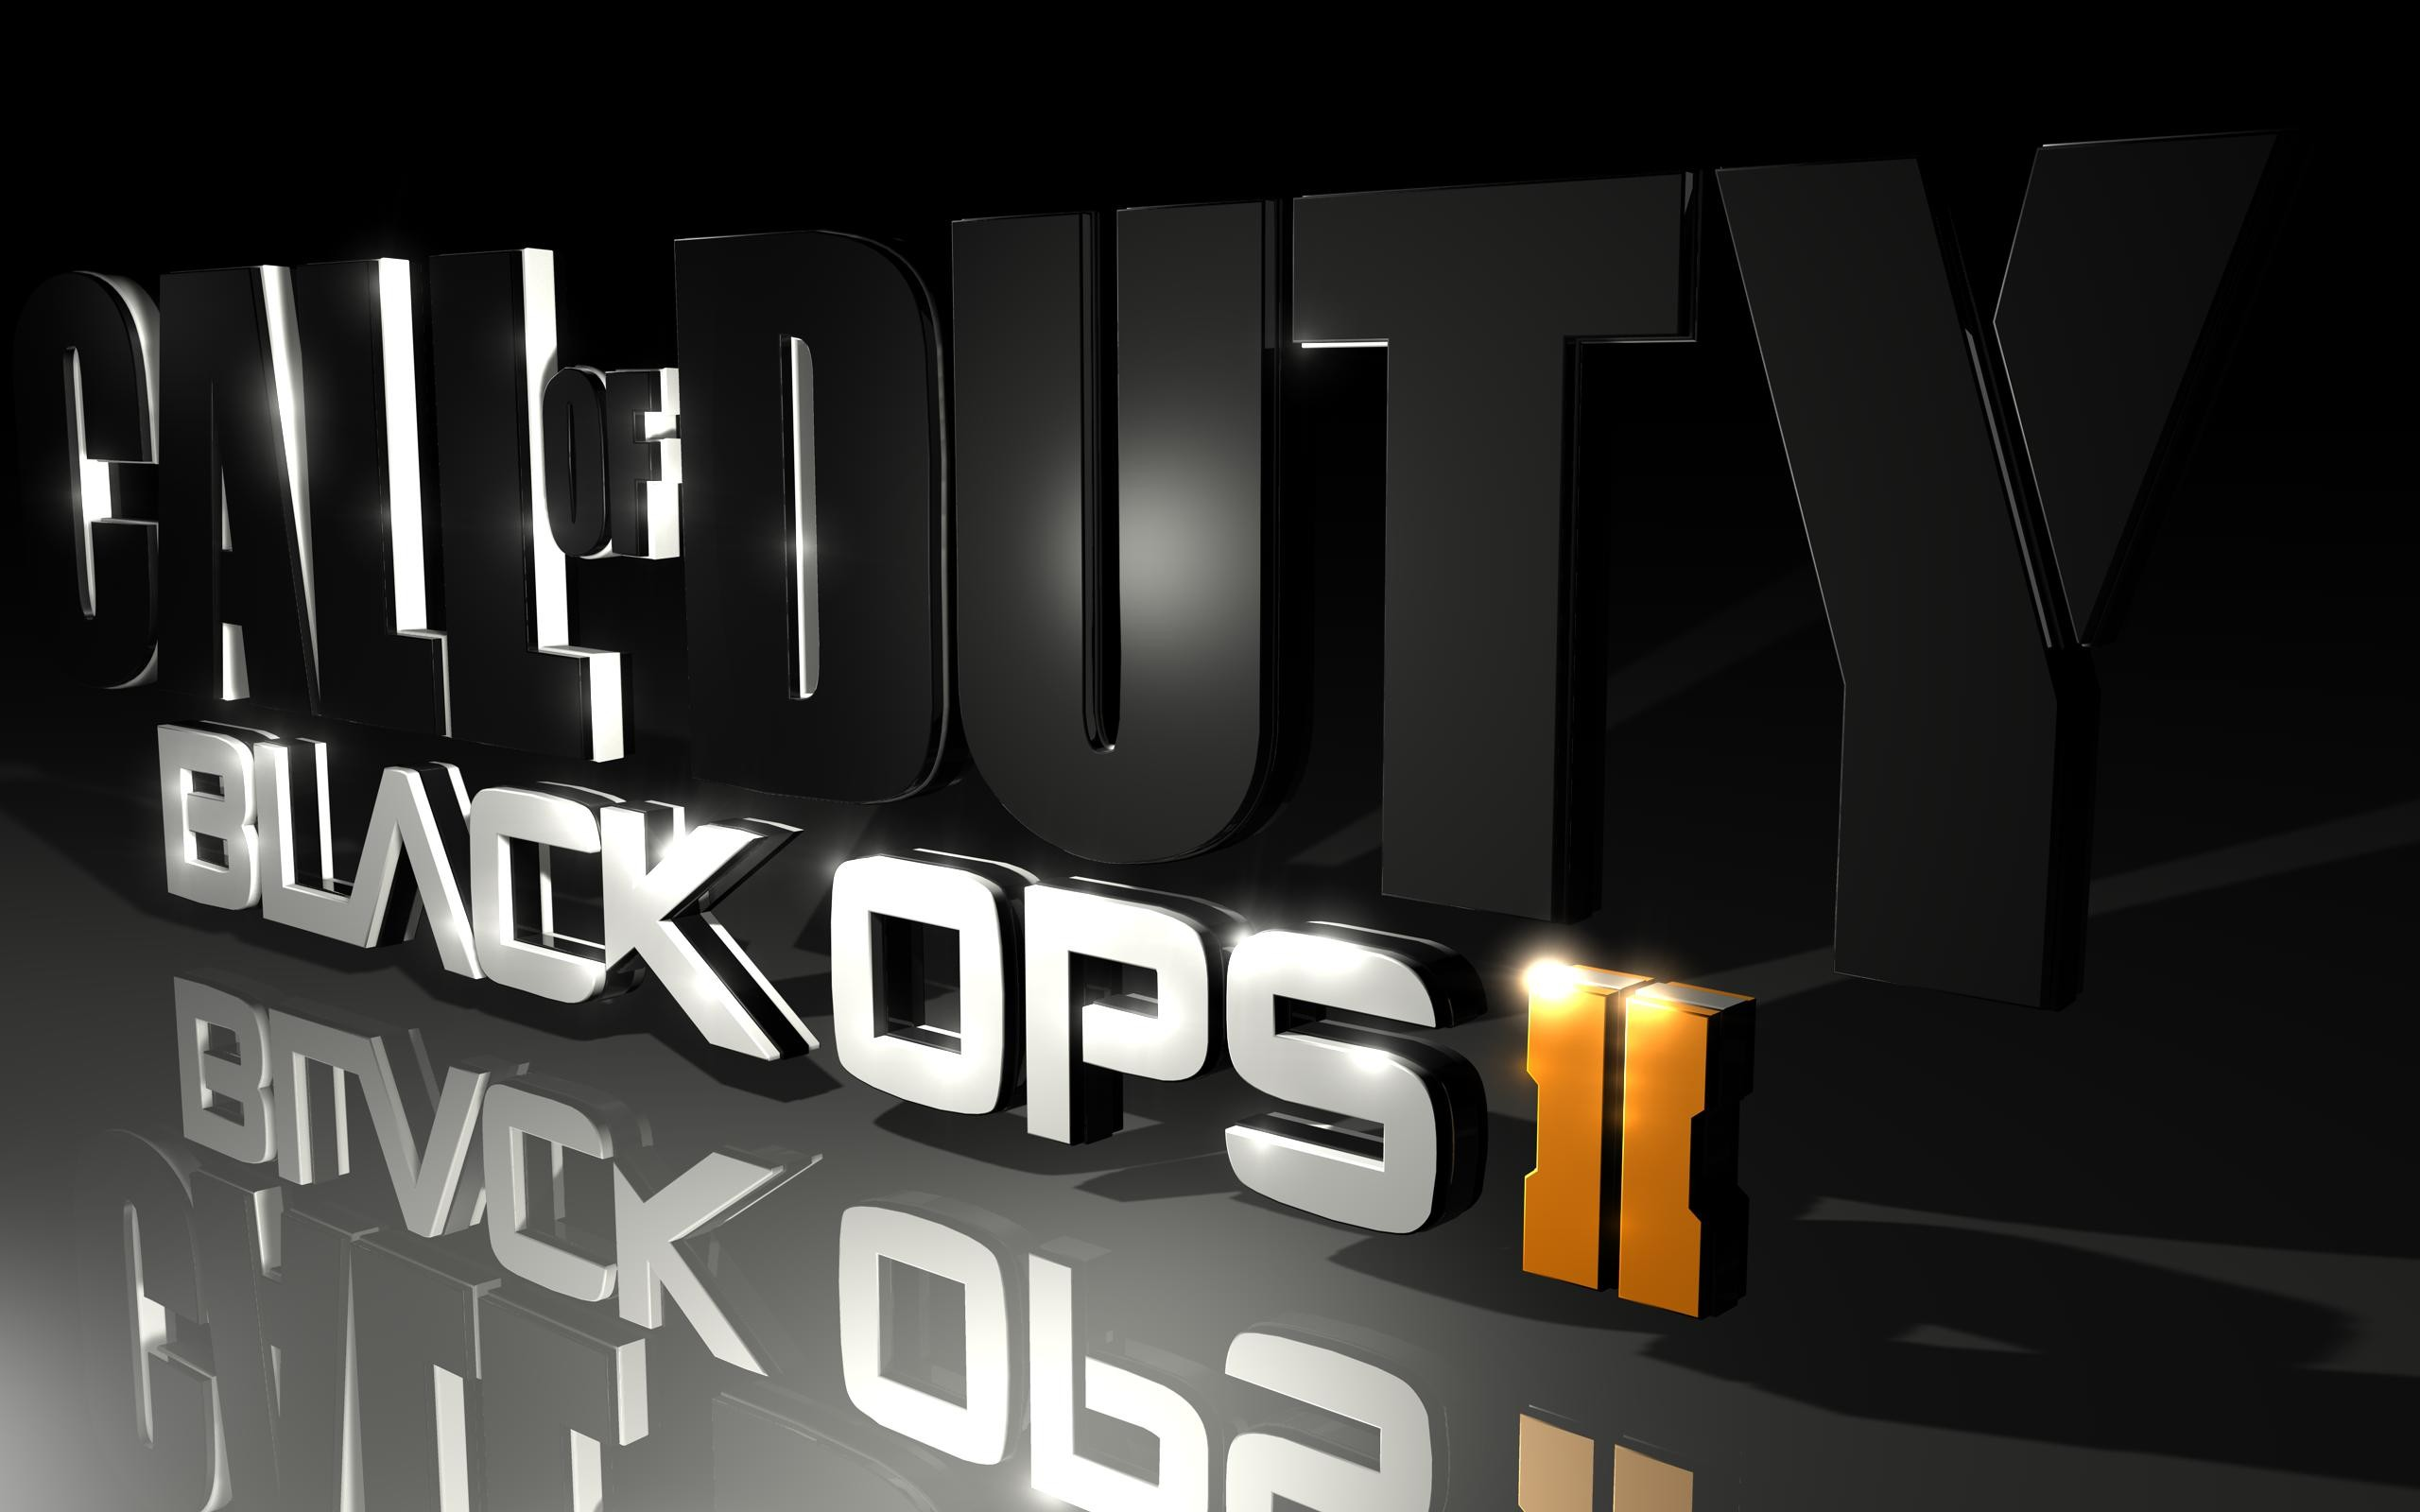 Black Ops Wallpapers – Full HD wallpaper search